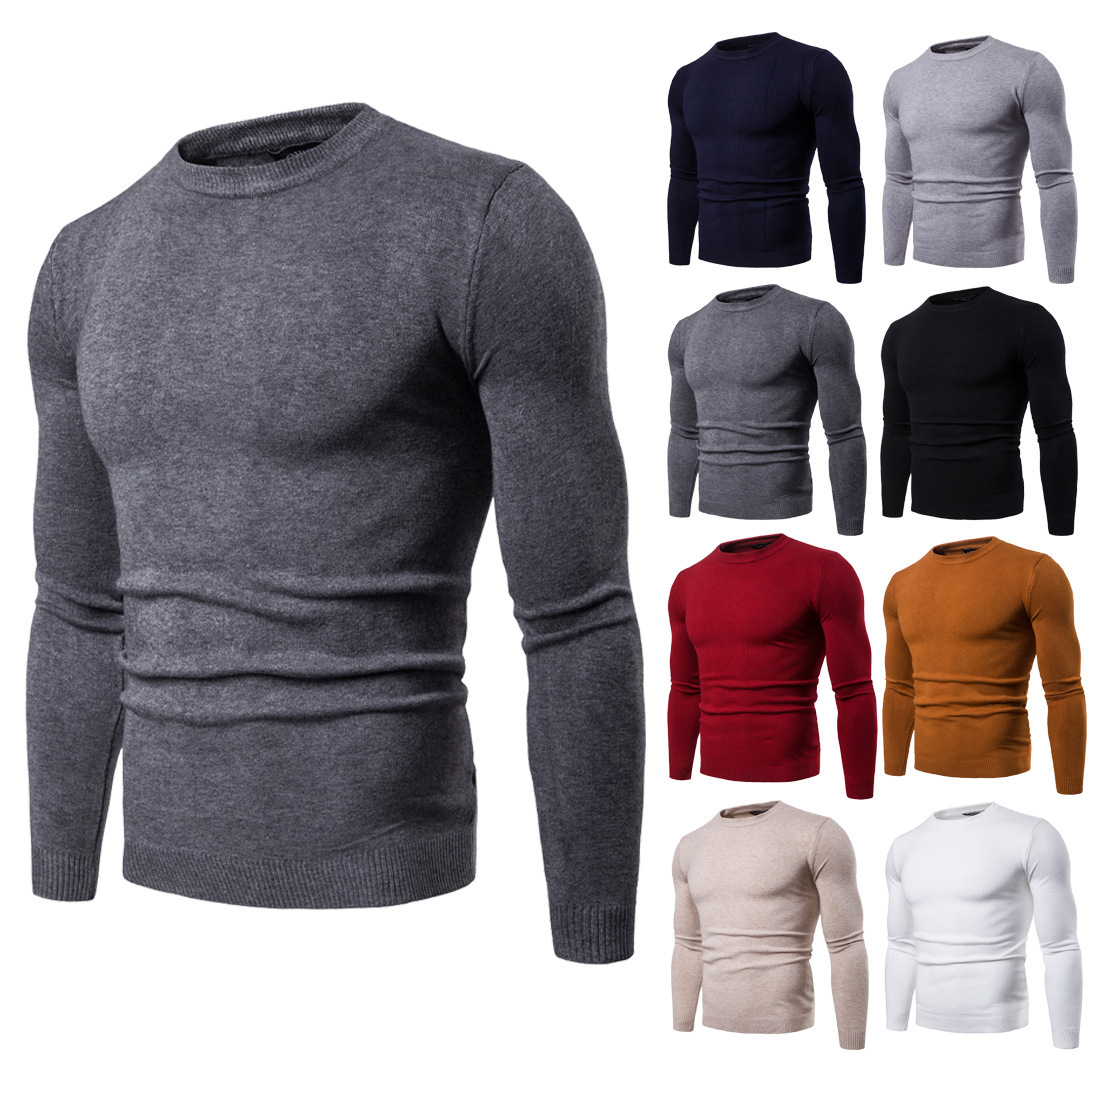 Men's Sweaters, Autumn And Winter Clothes, Men's Jackets, Sweaters, Warm Winter Clothes, Men's Clothes, Pullover Men